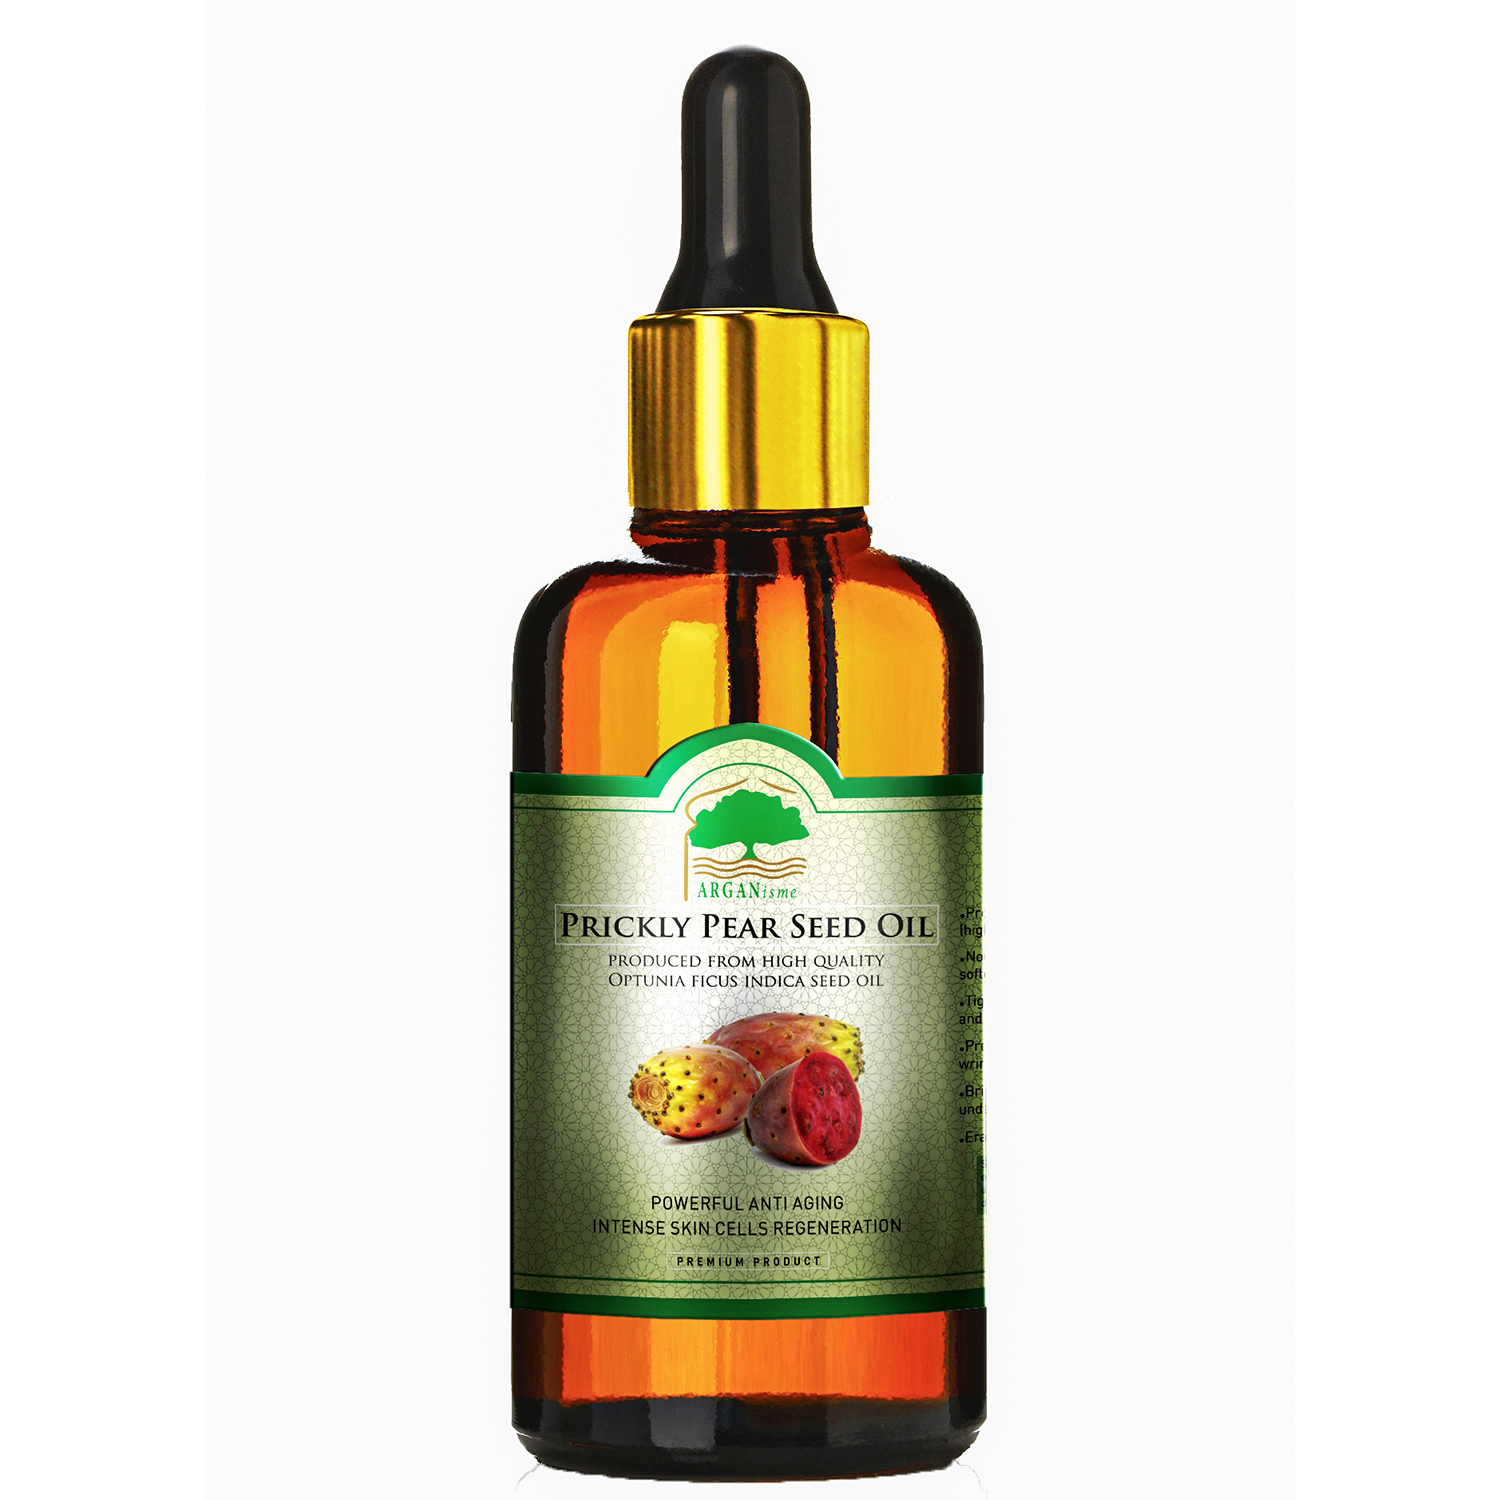 Prickly pear seed oil manufacturer